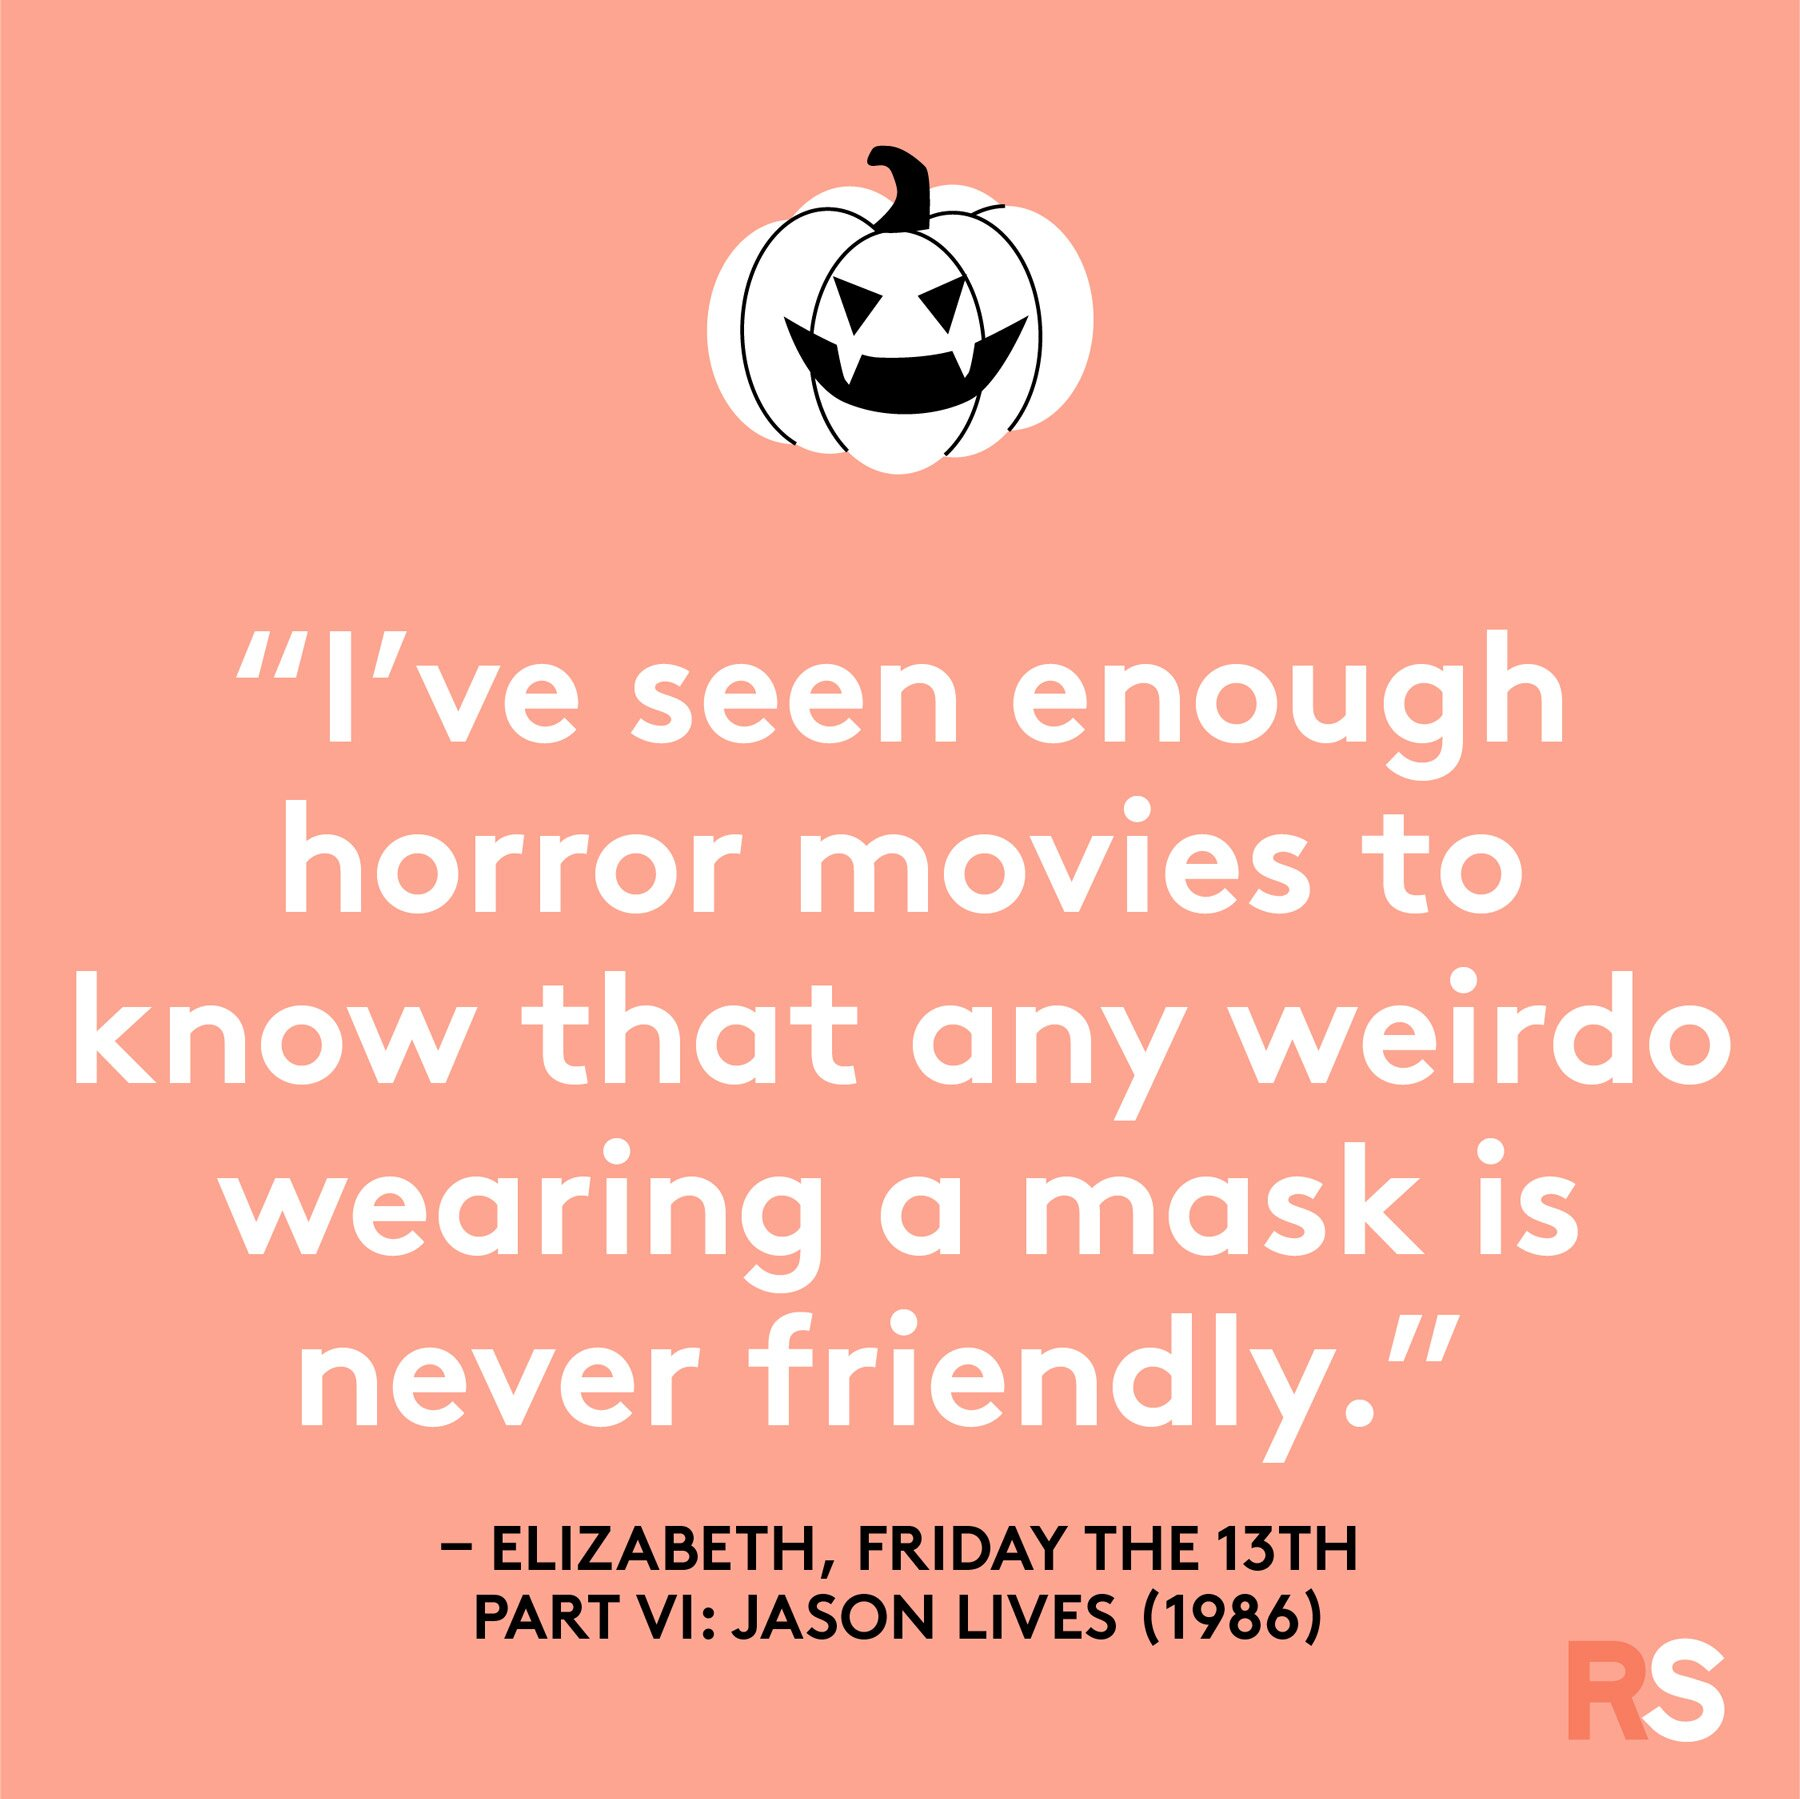 Halloween quotes, sayings, phrases - Friday the 13th quote